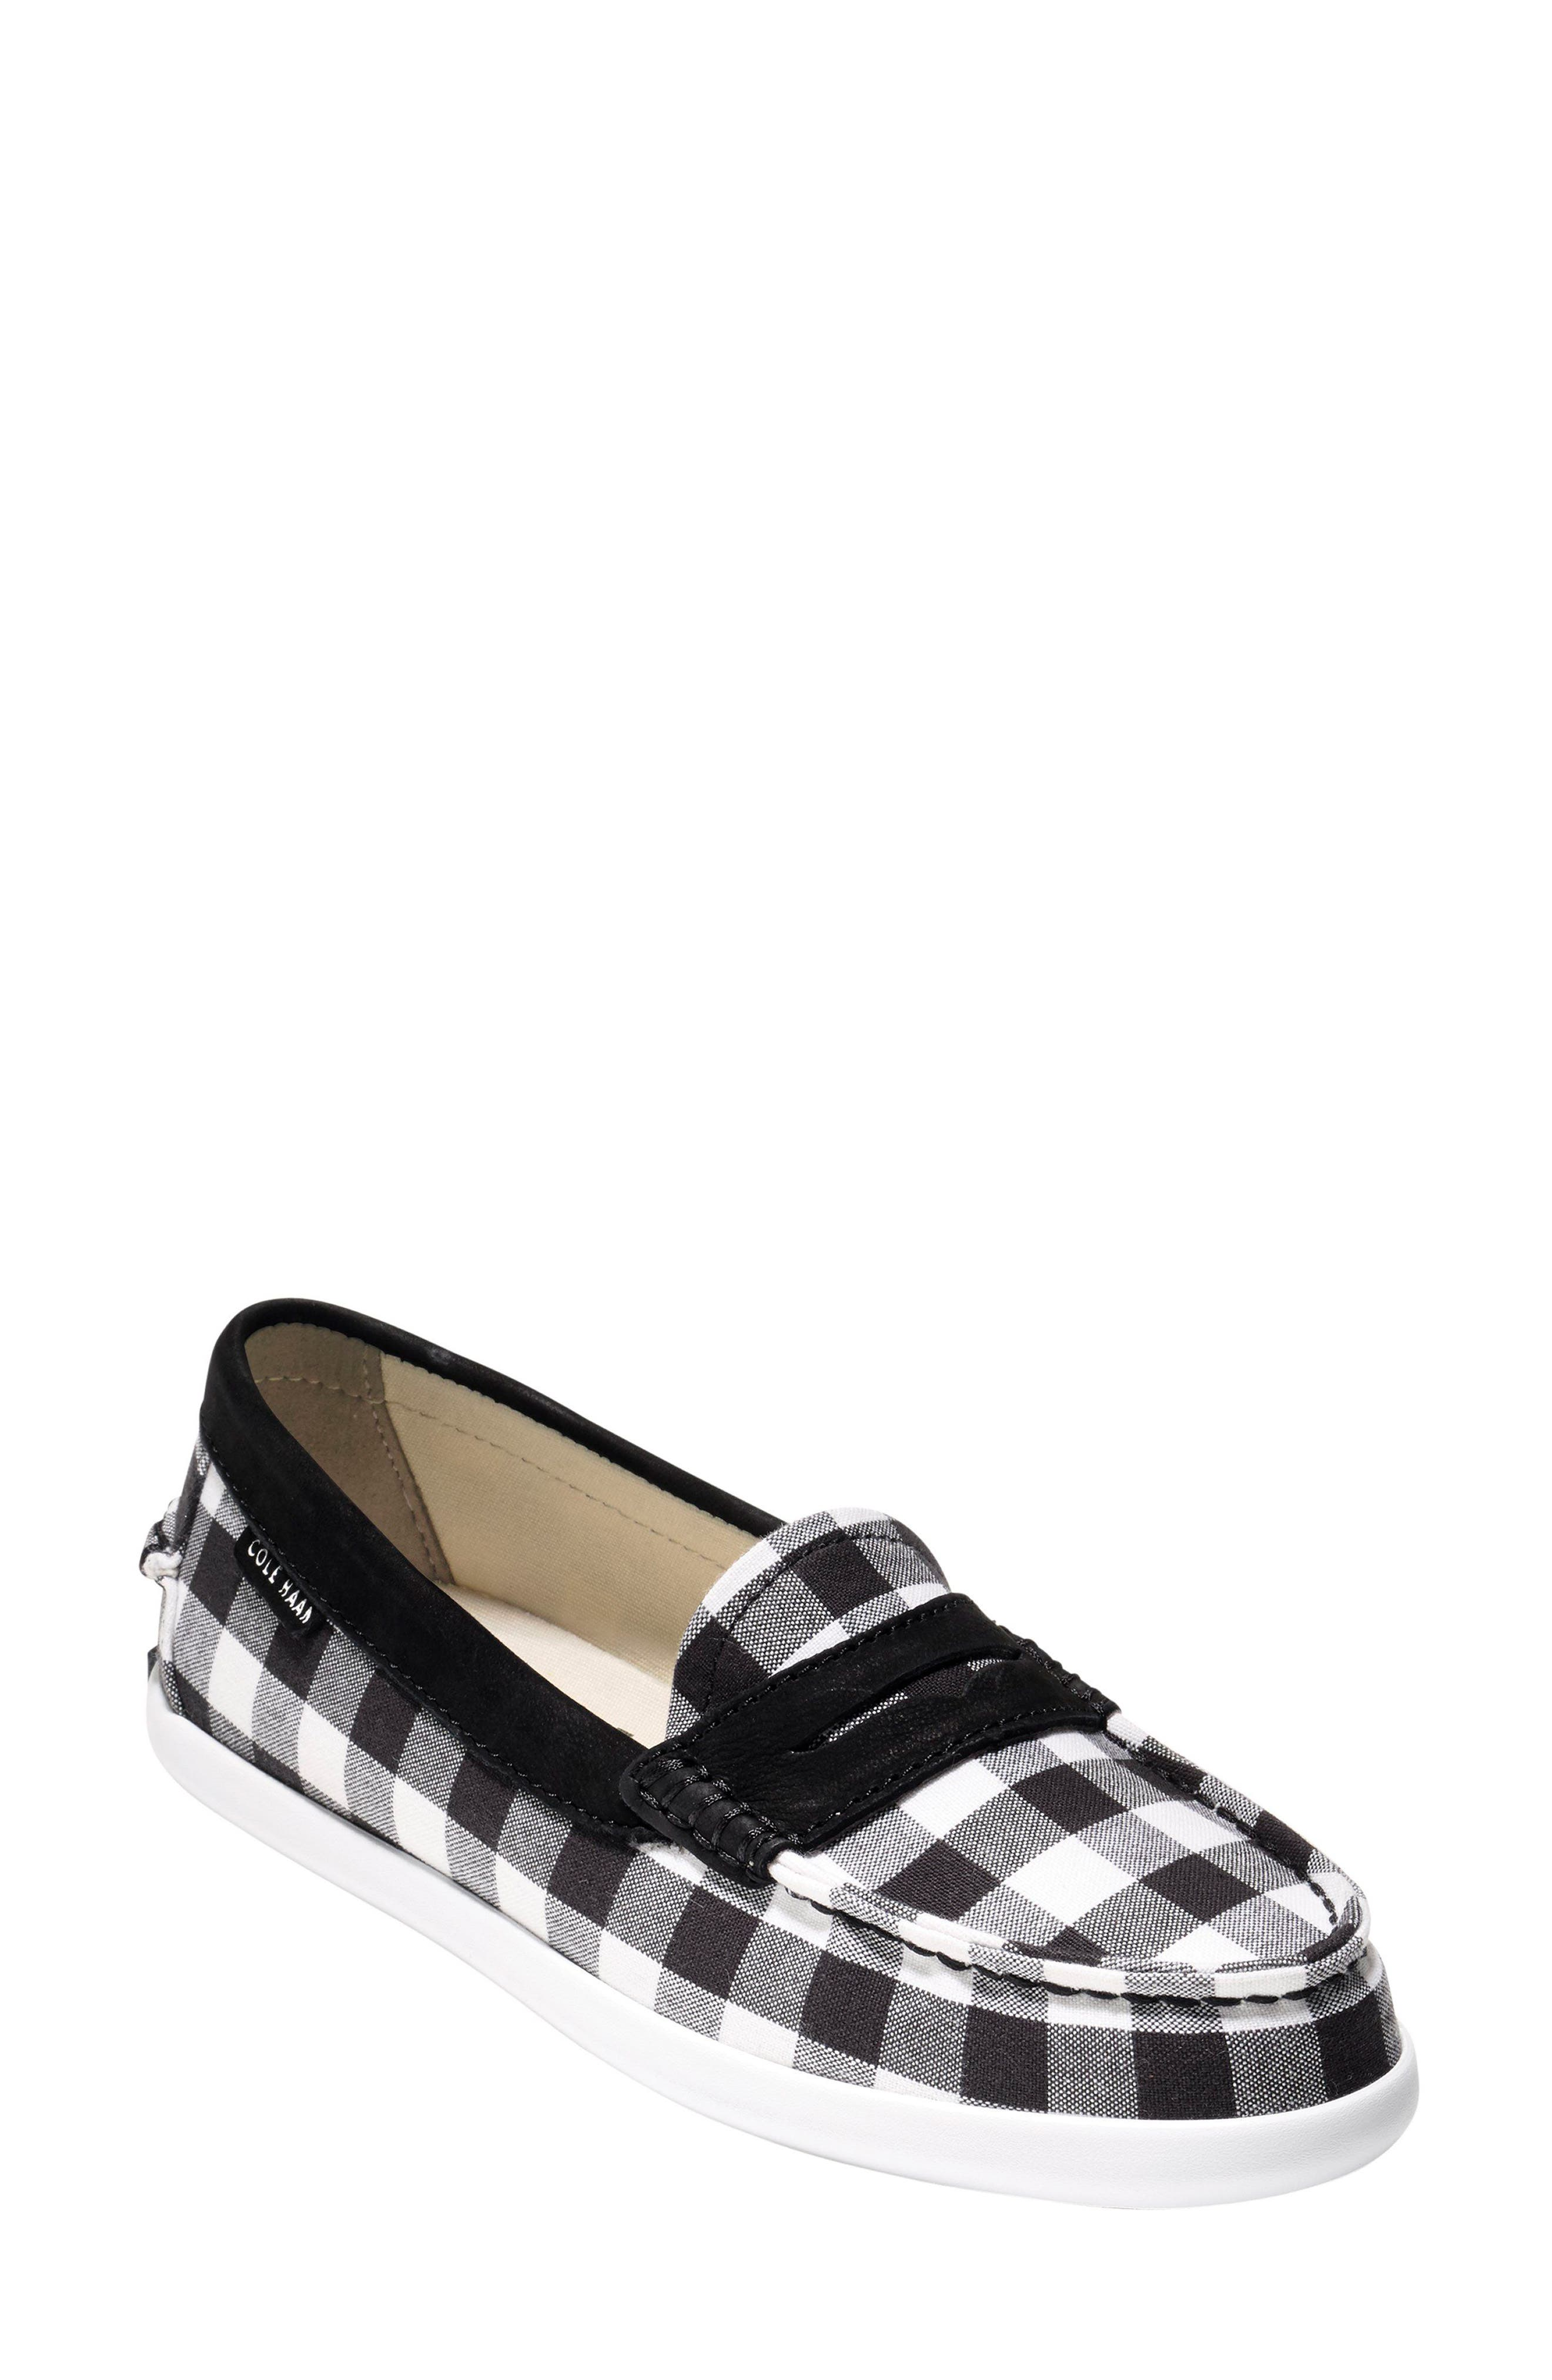 Cole Haan Pinch Penny Loafer (Women)